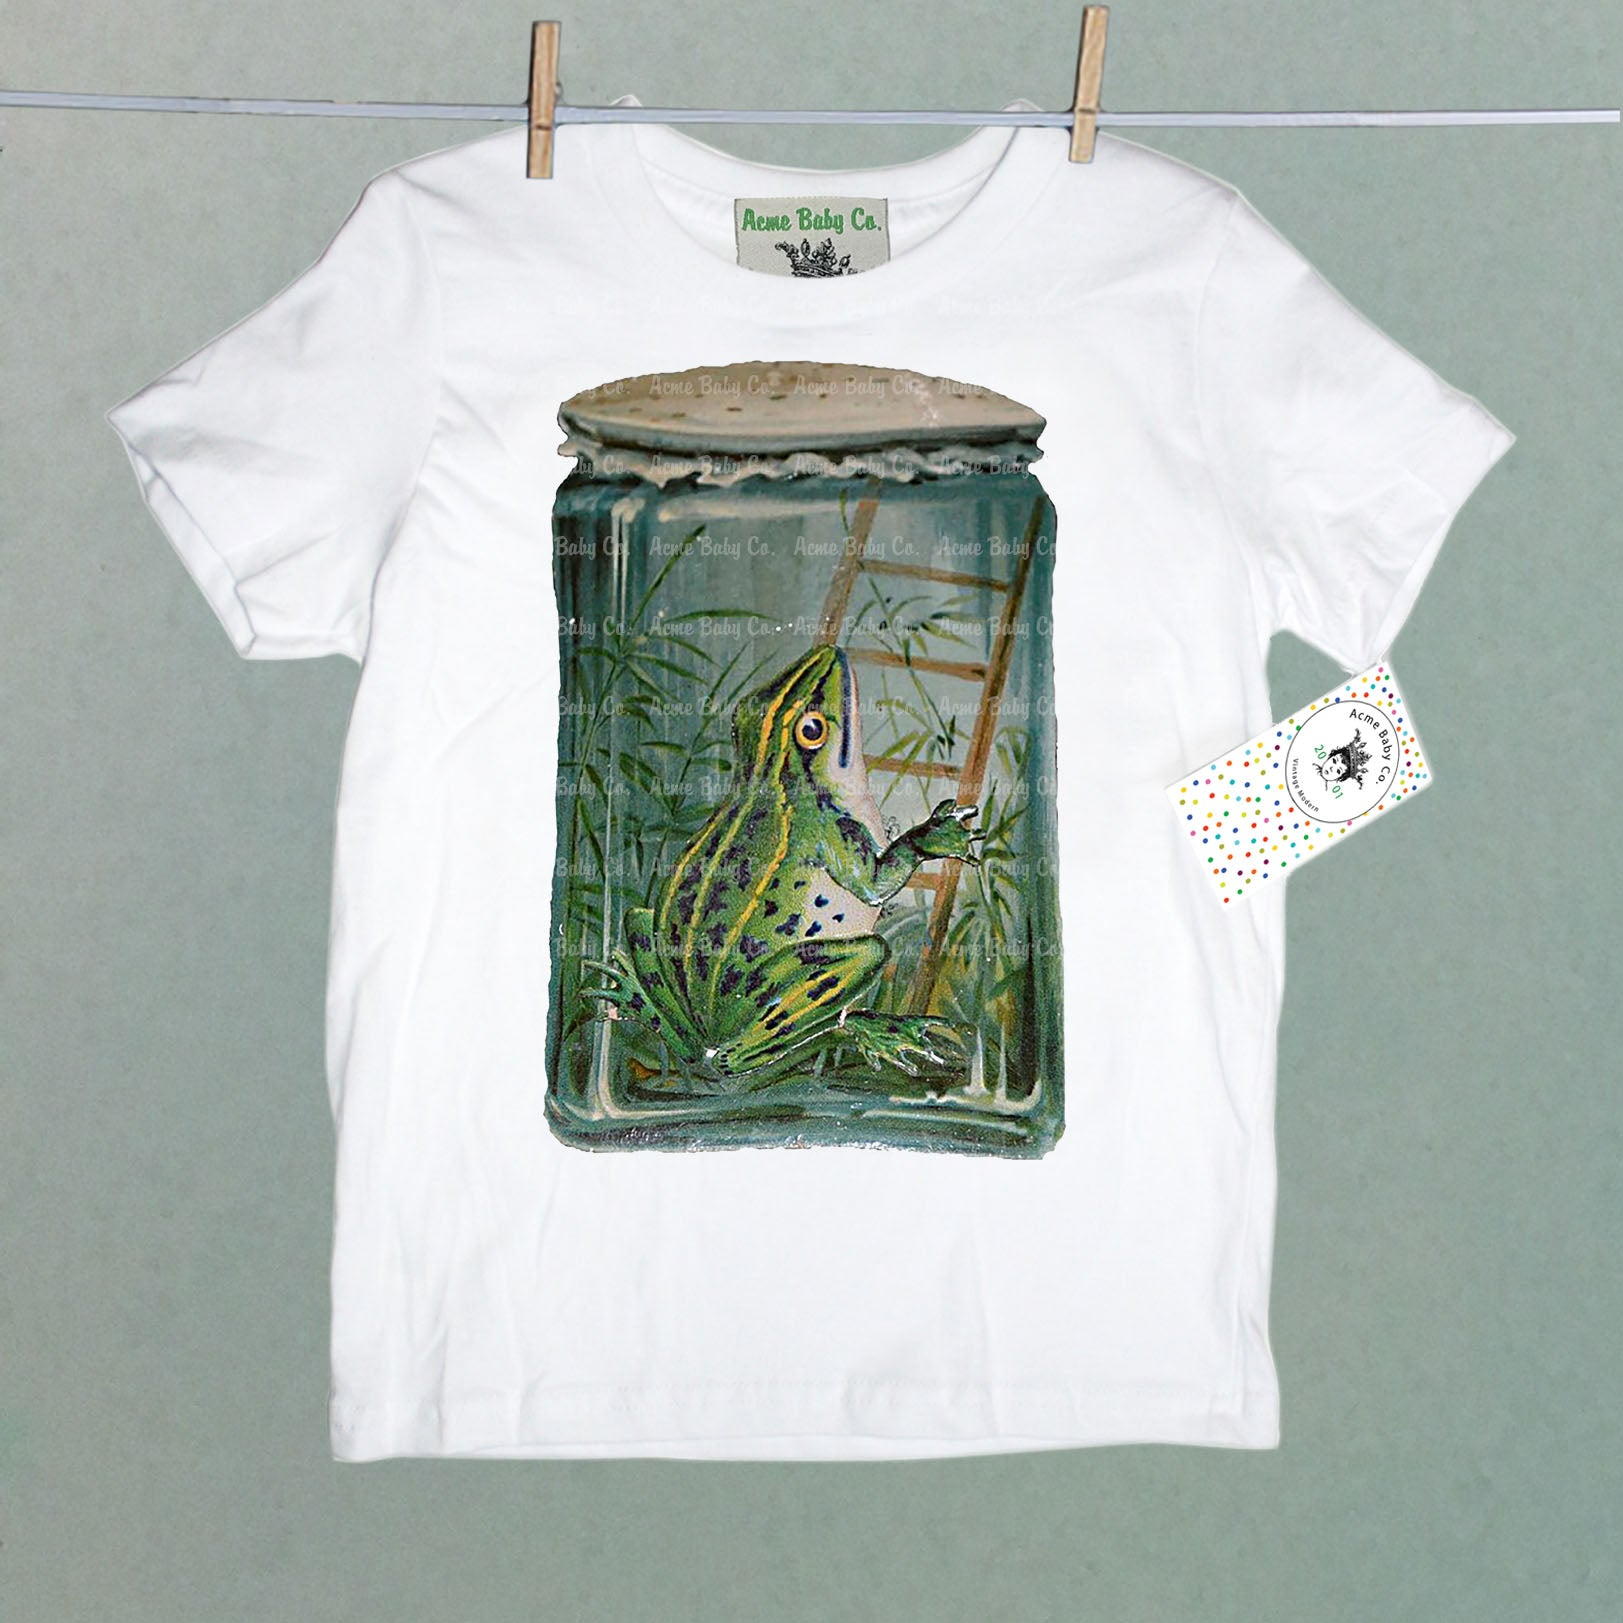 Frog in Jar Organic Children's Shirt